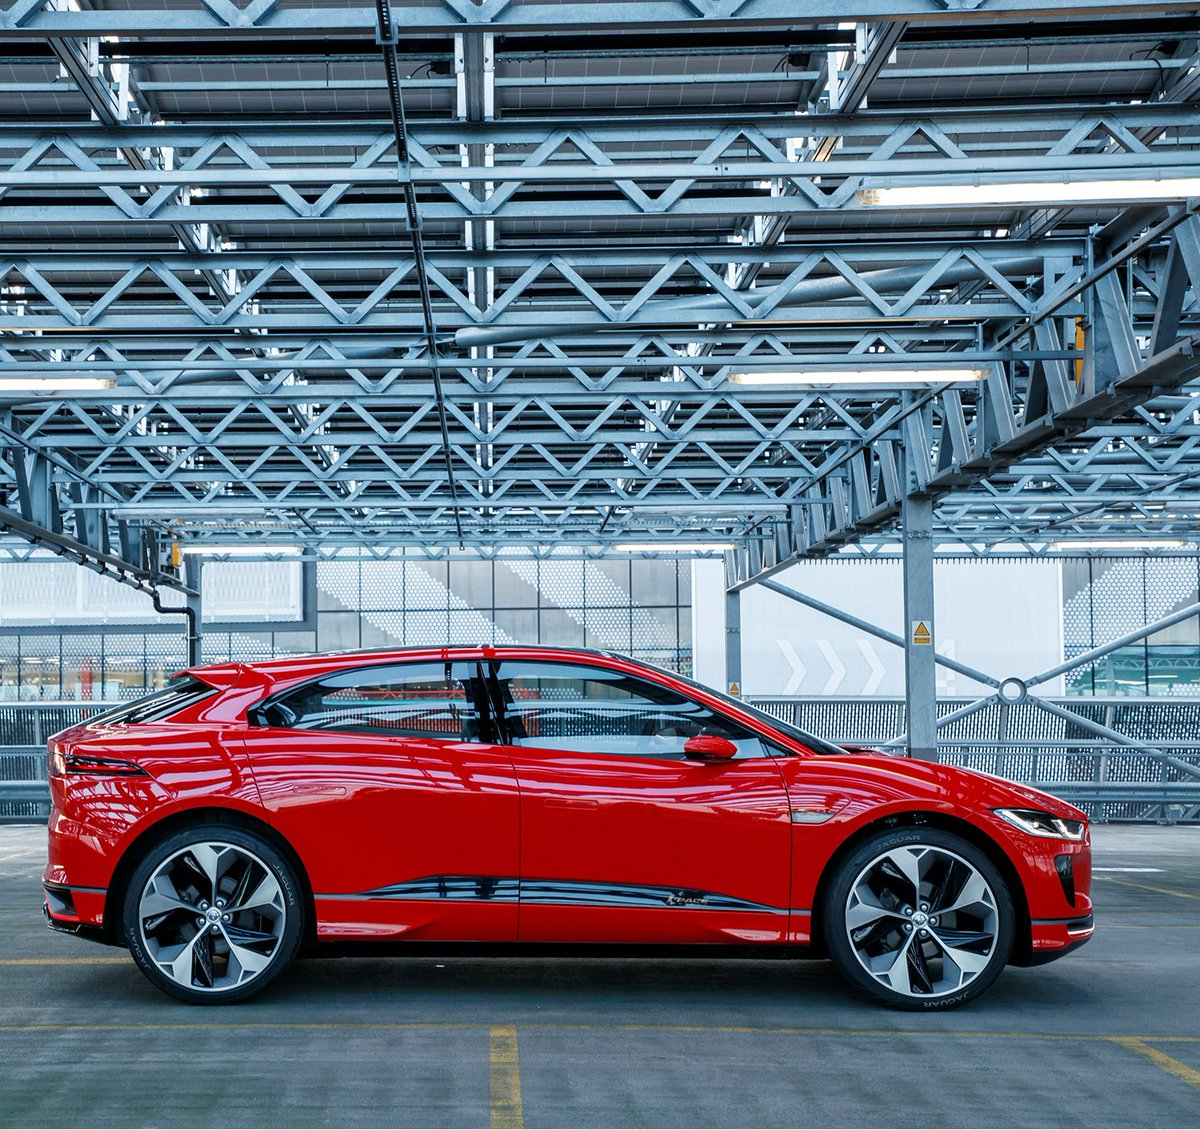 Distinguish yourself. #IPACE https://t.co/1s3TMqLRN8   When designing electric vehicles, you can throw out the rulebook. https://t.co/SqZlhl6aqI